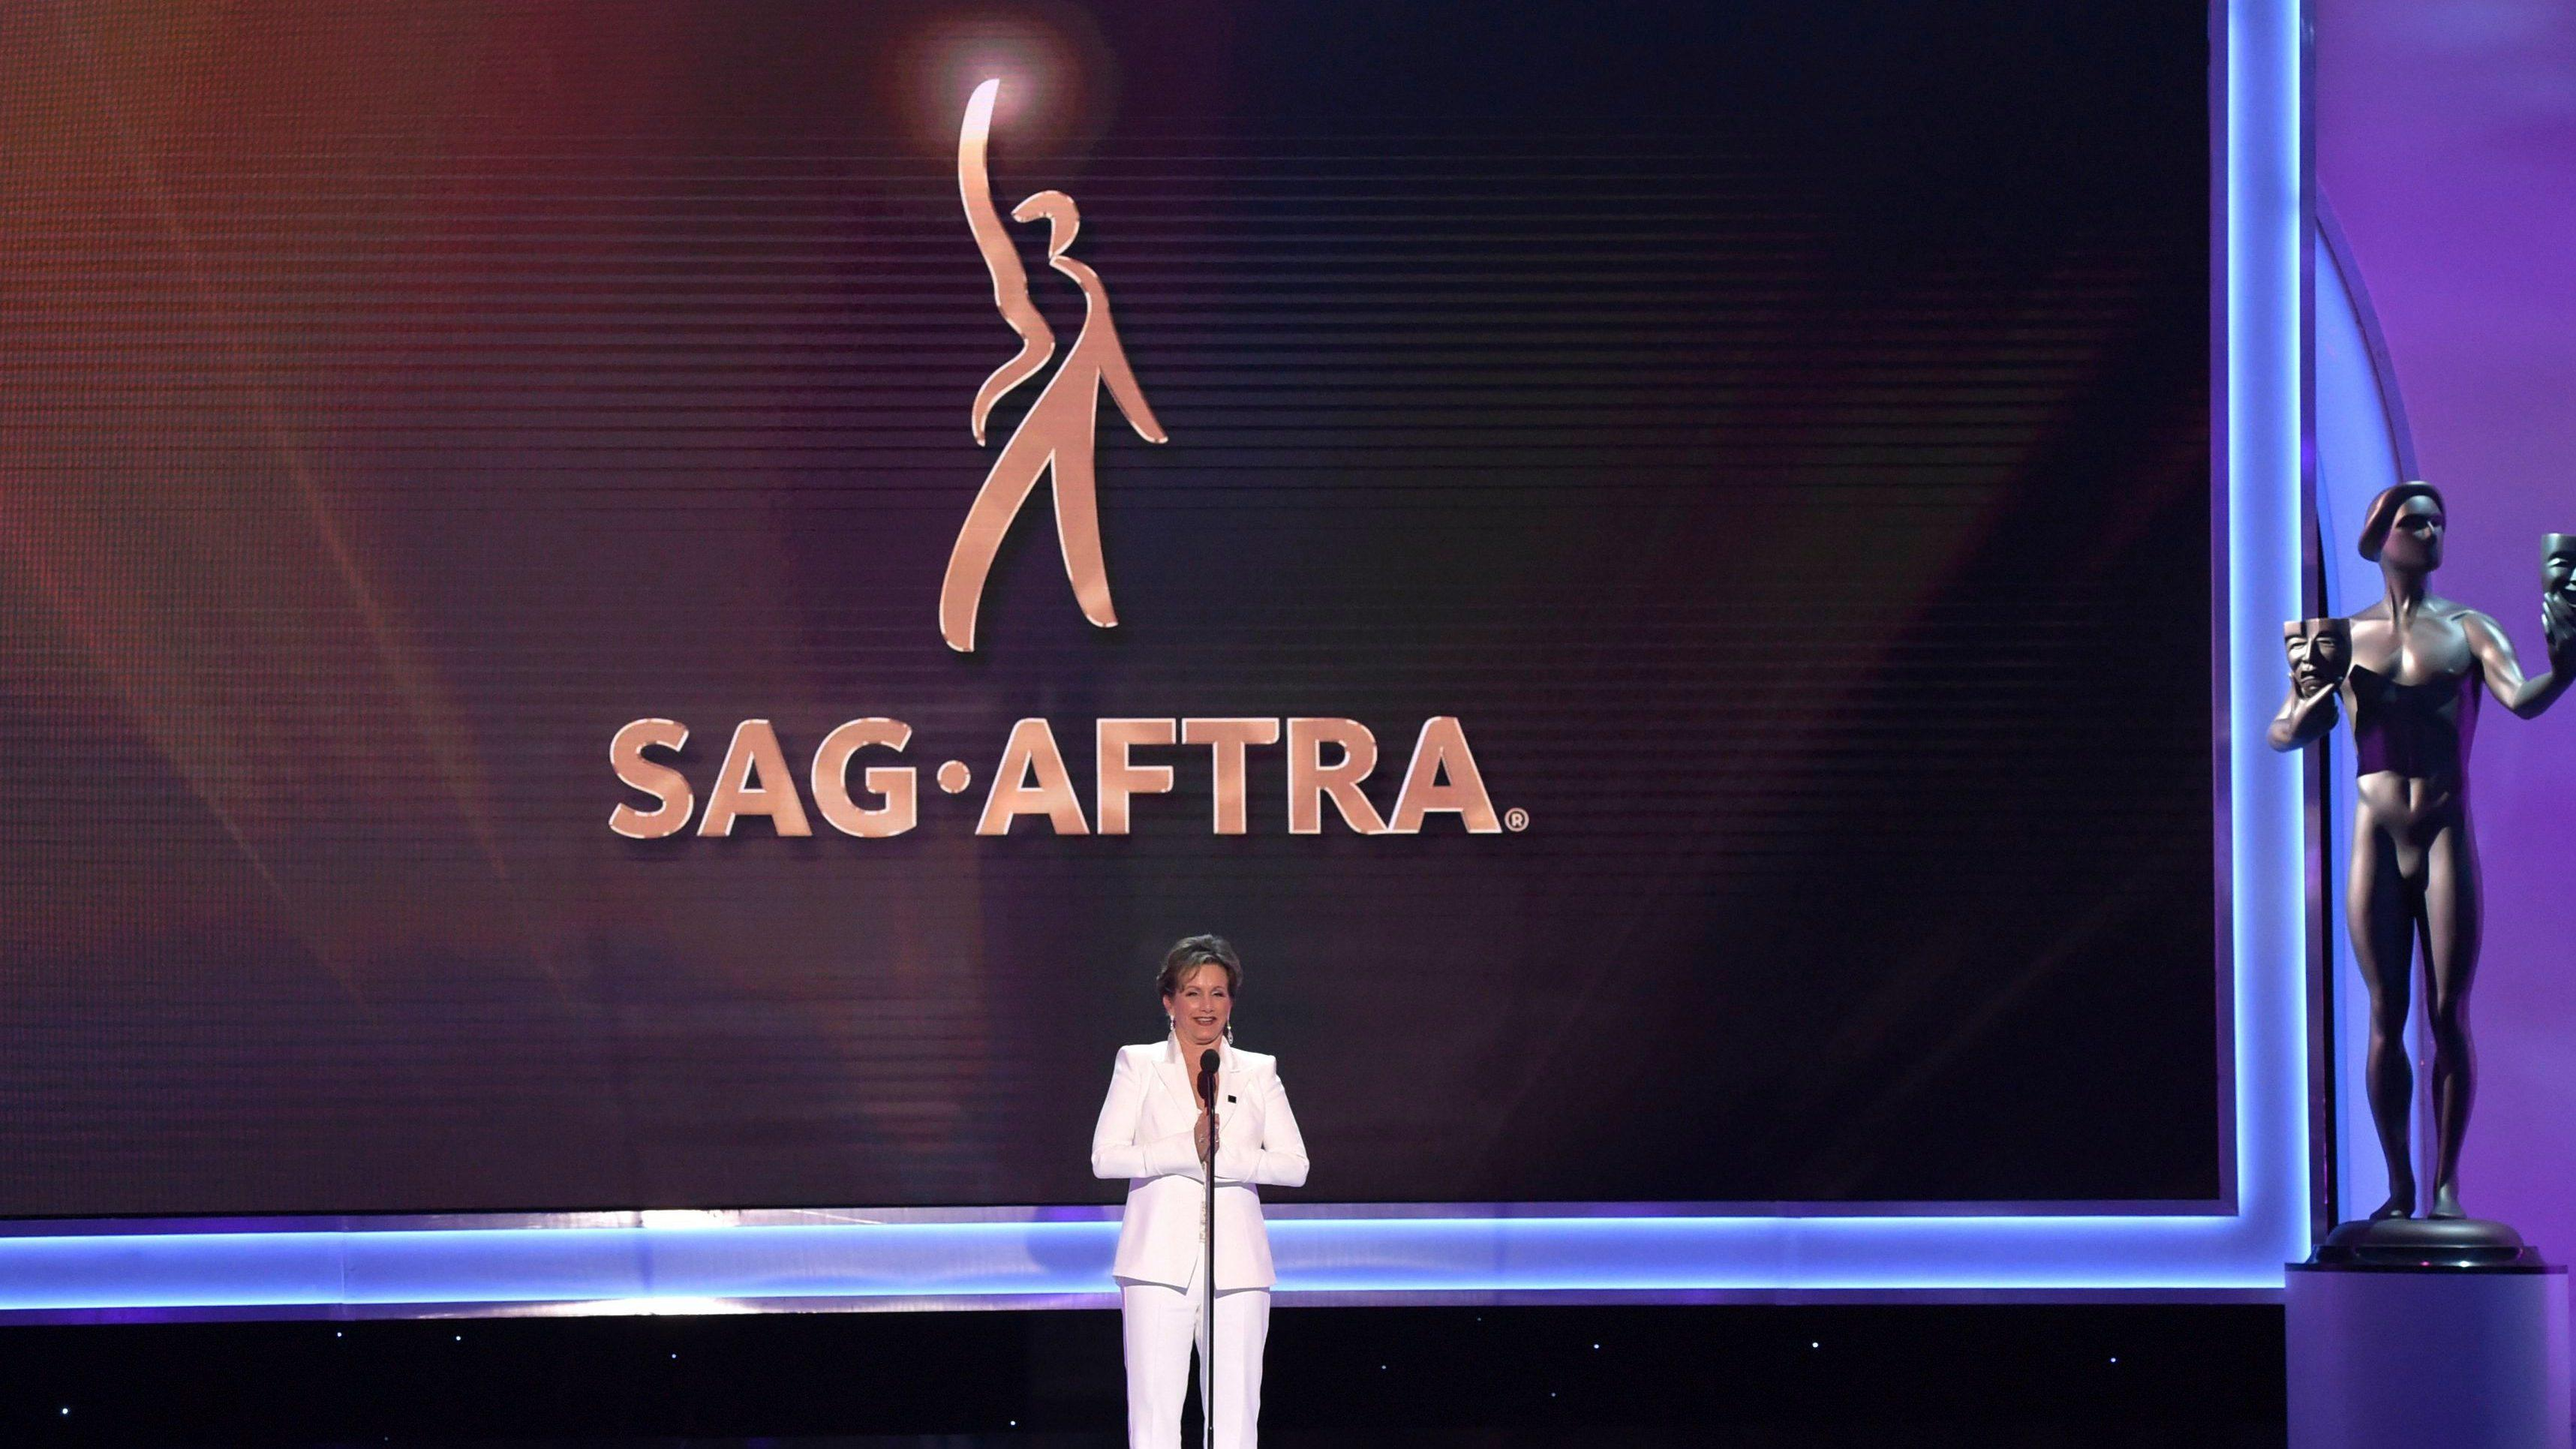 SAG-AFTRA Pulls Franchise Of Jordan McKirahan Talent Agency